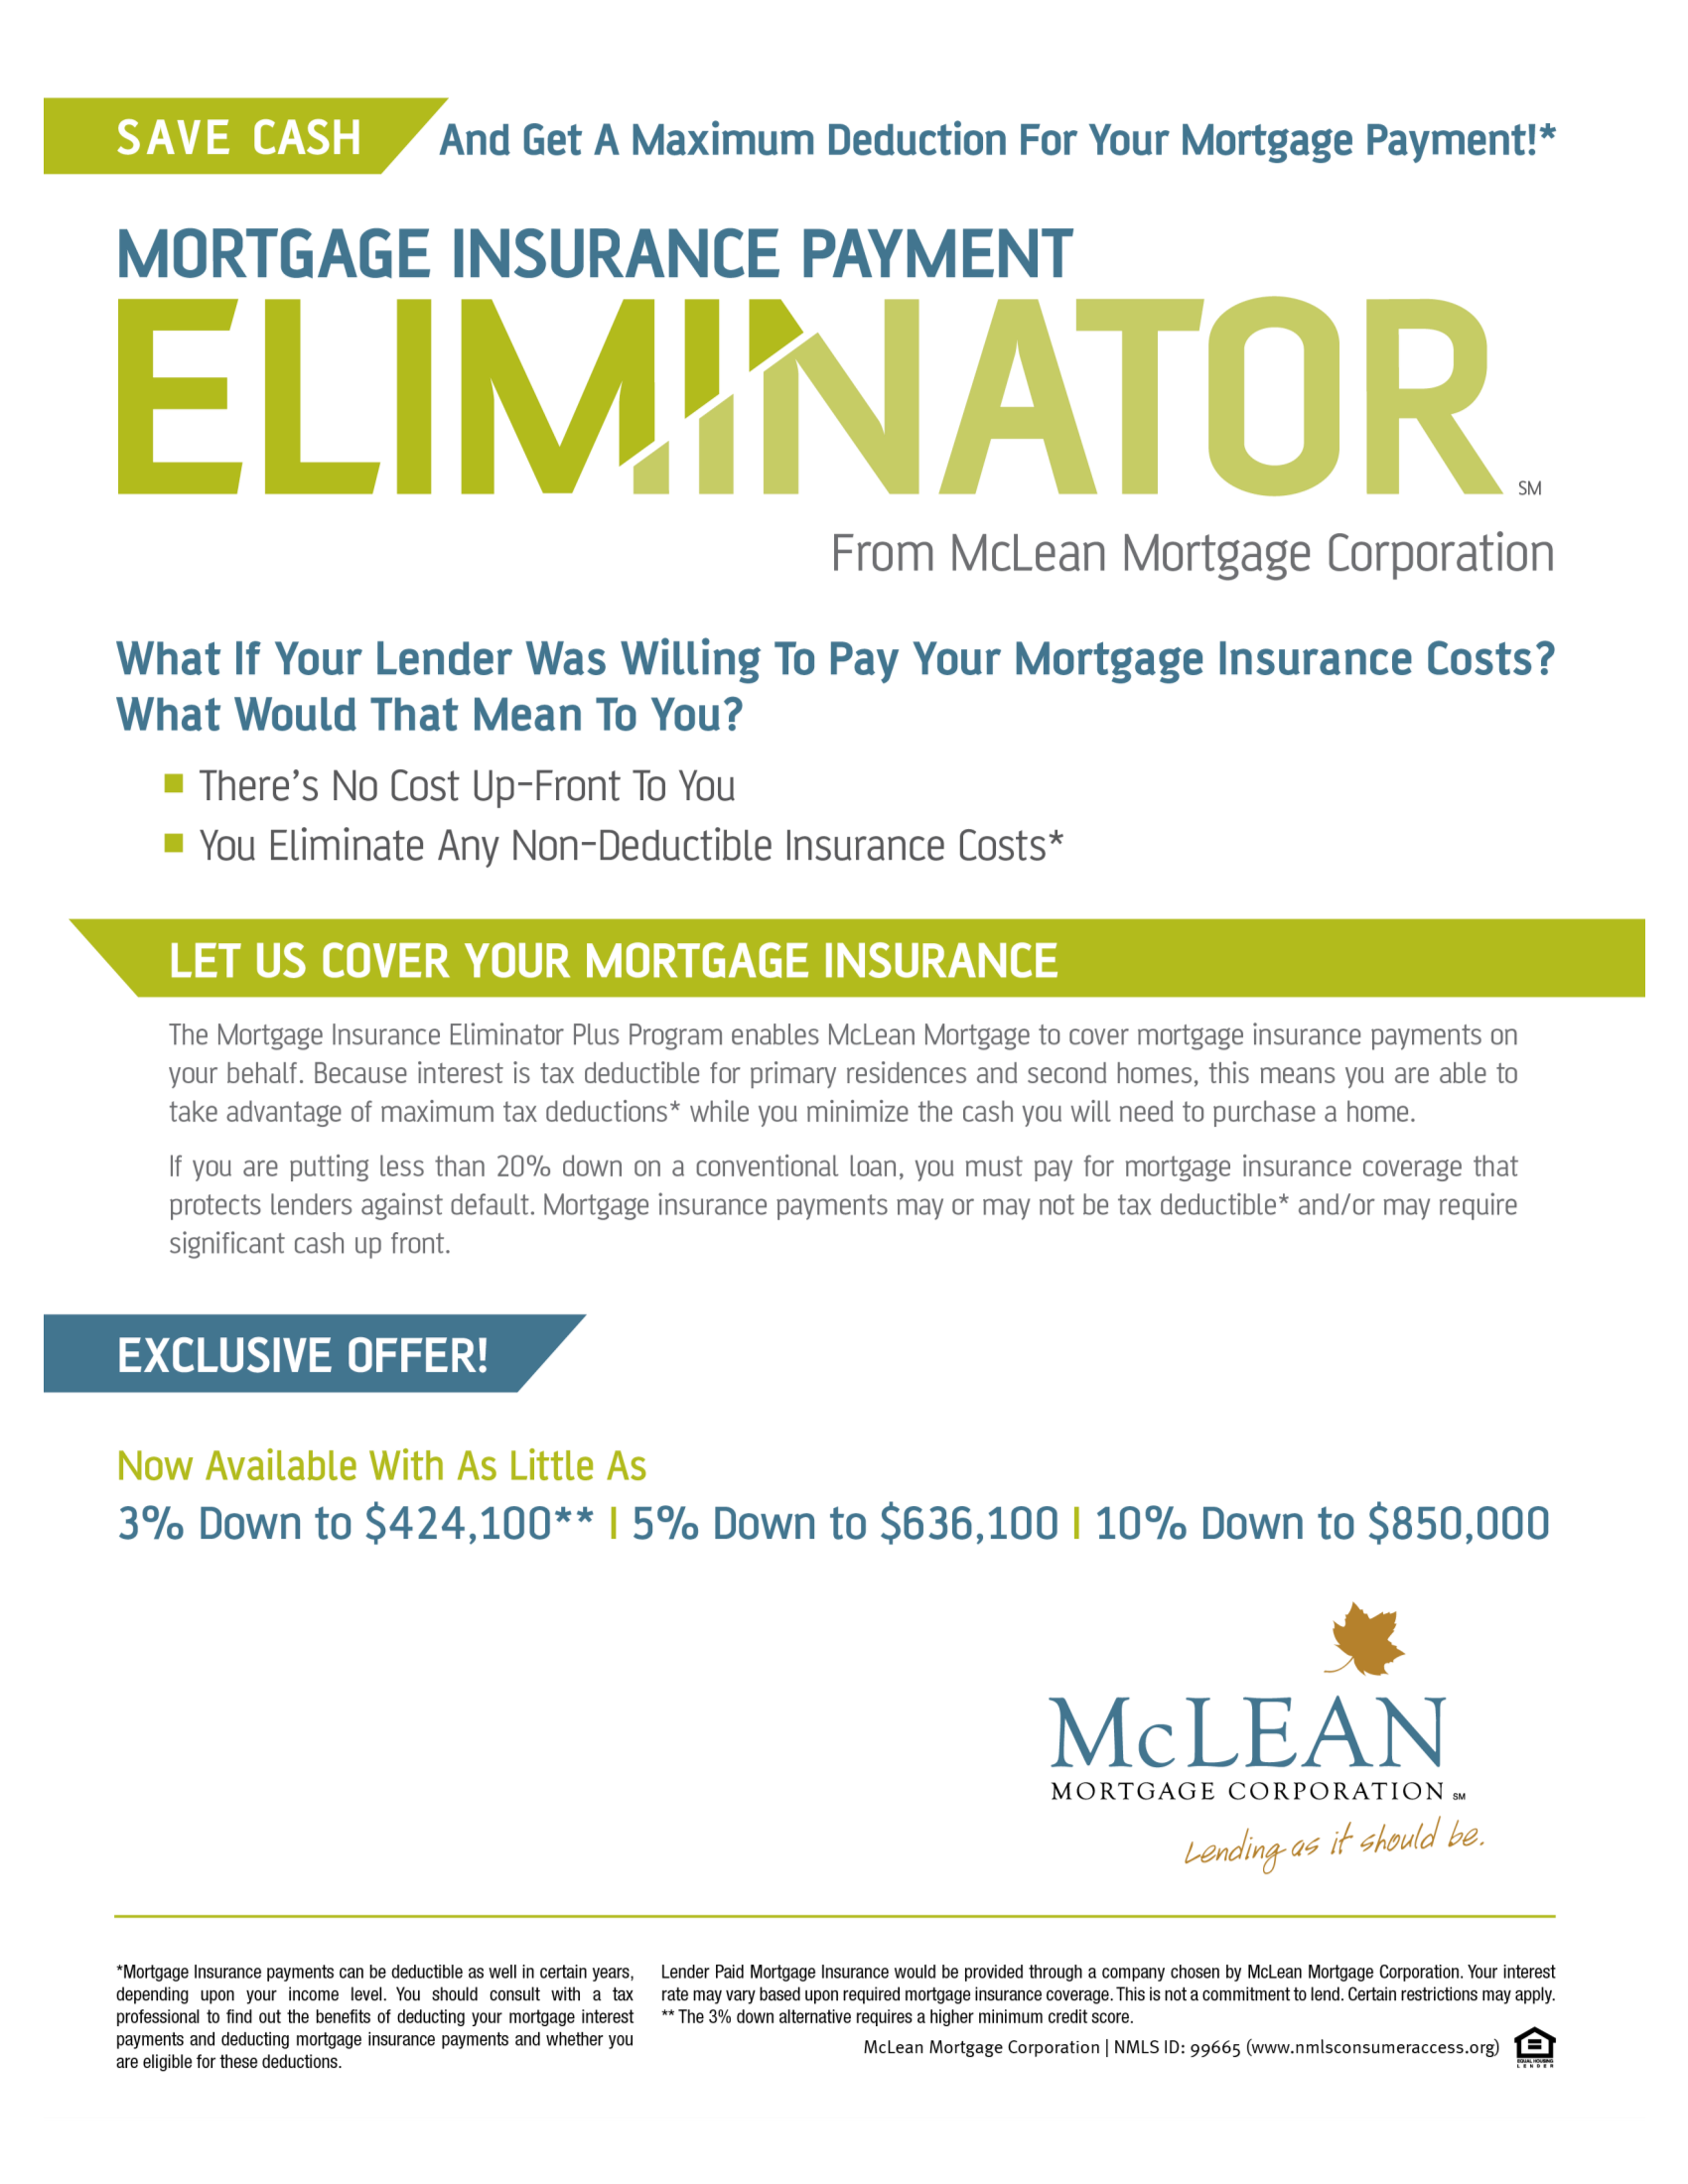 Mortgage Insurance Payment Eliminator